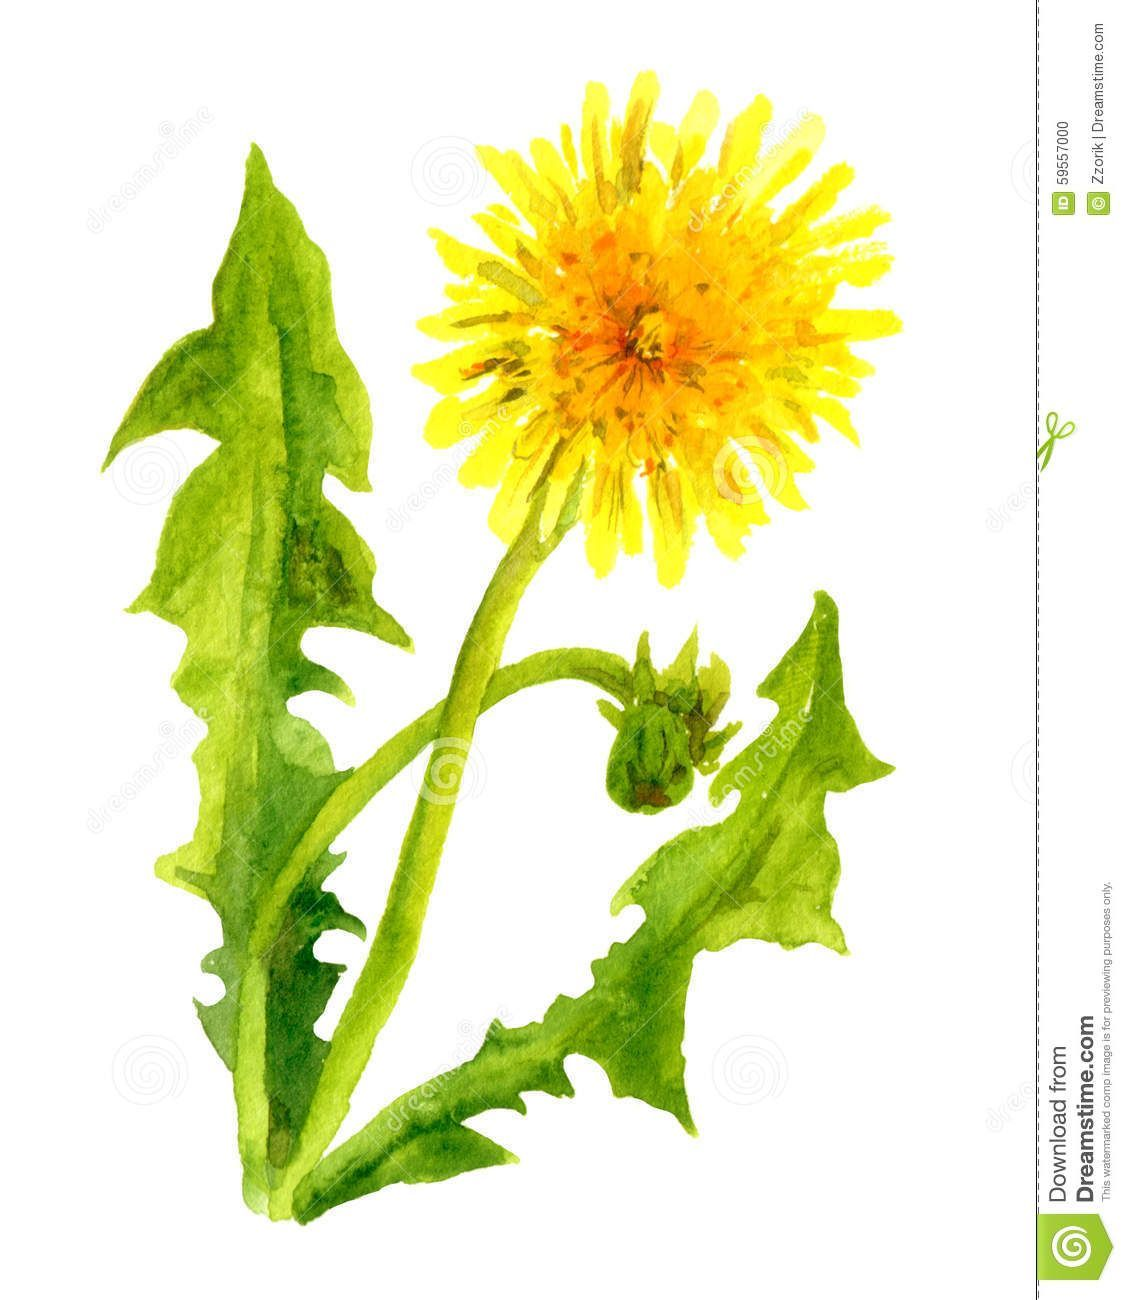 Image Result For Yellow Dandelion Watercolor Paintings Dandelion Painting Dandelion Flower Dandelion Art